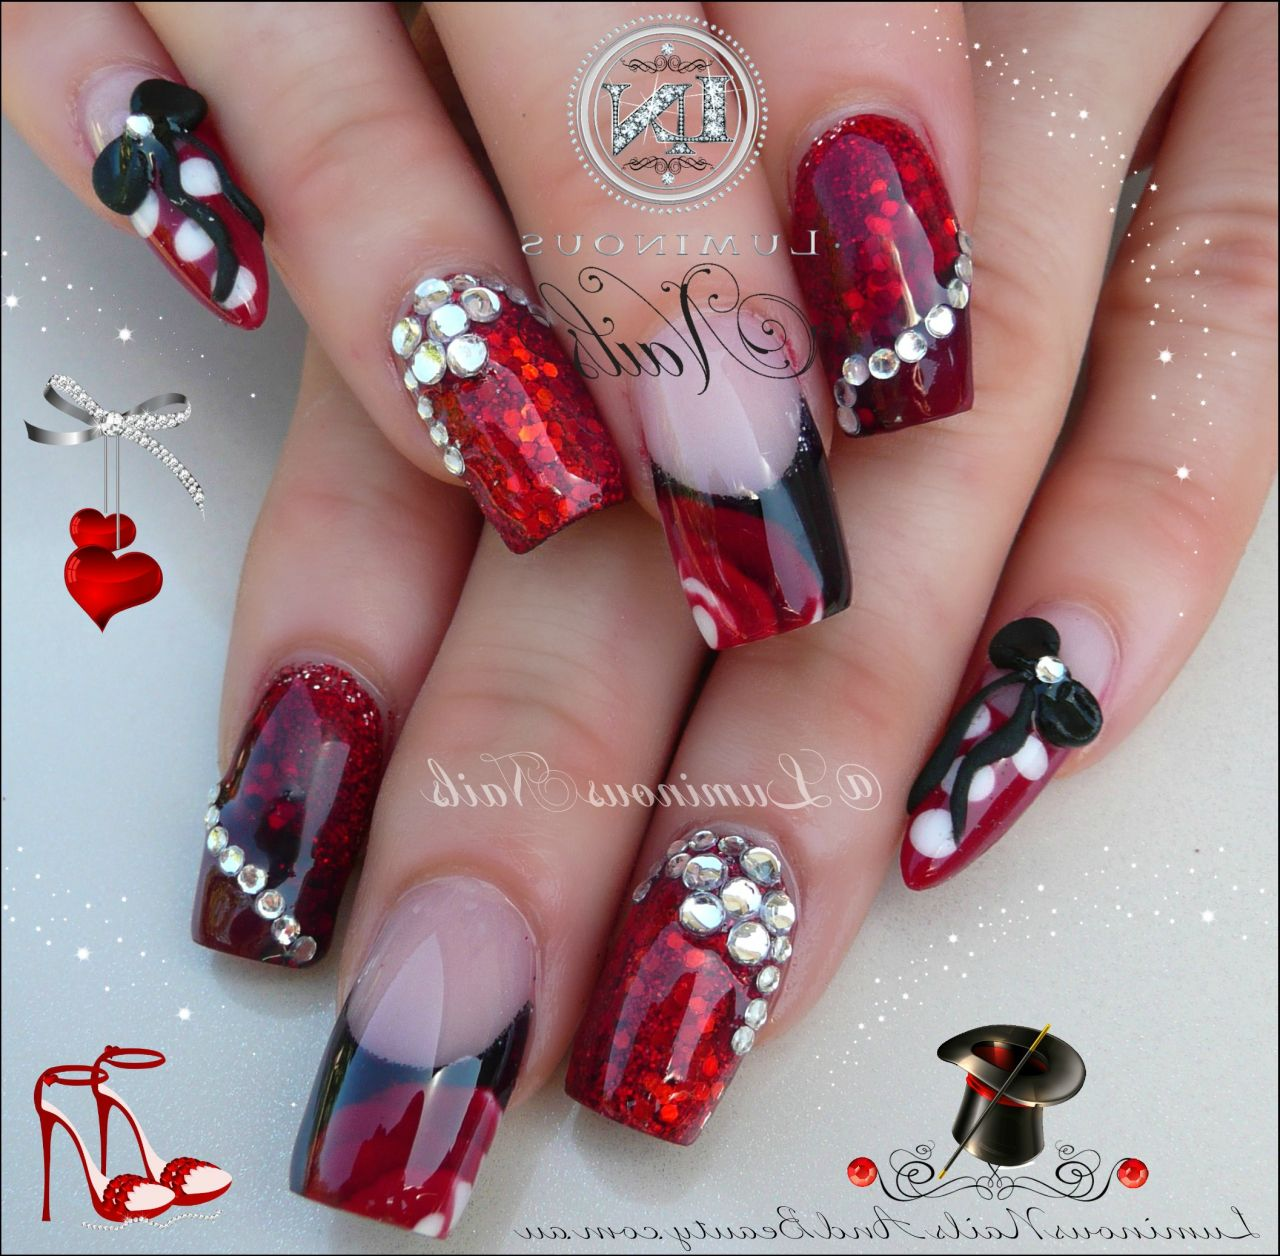 Diy acrylic nail designs rhinestones and 3d bows acrylic art prinsesfo Image collections